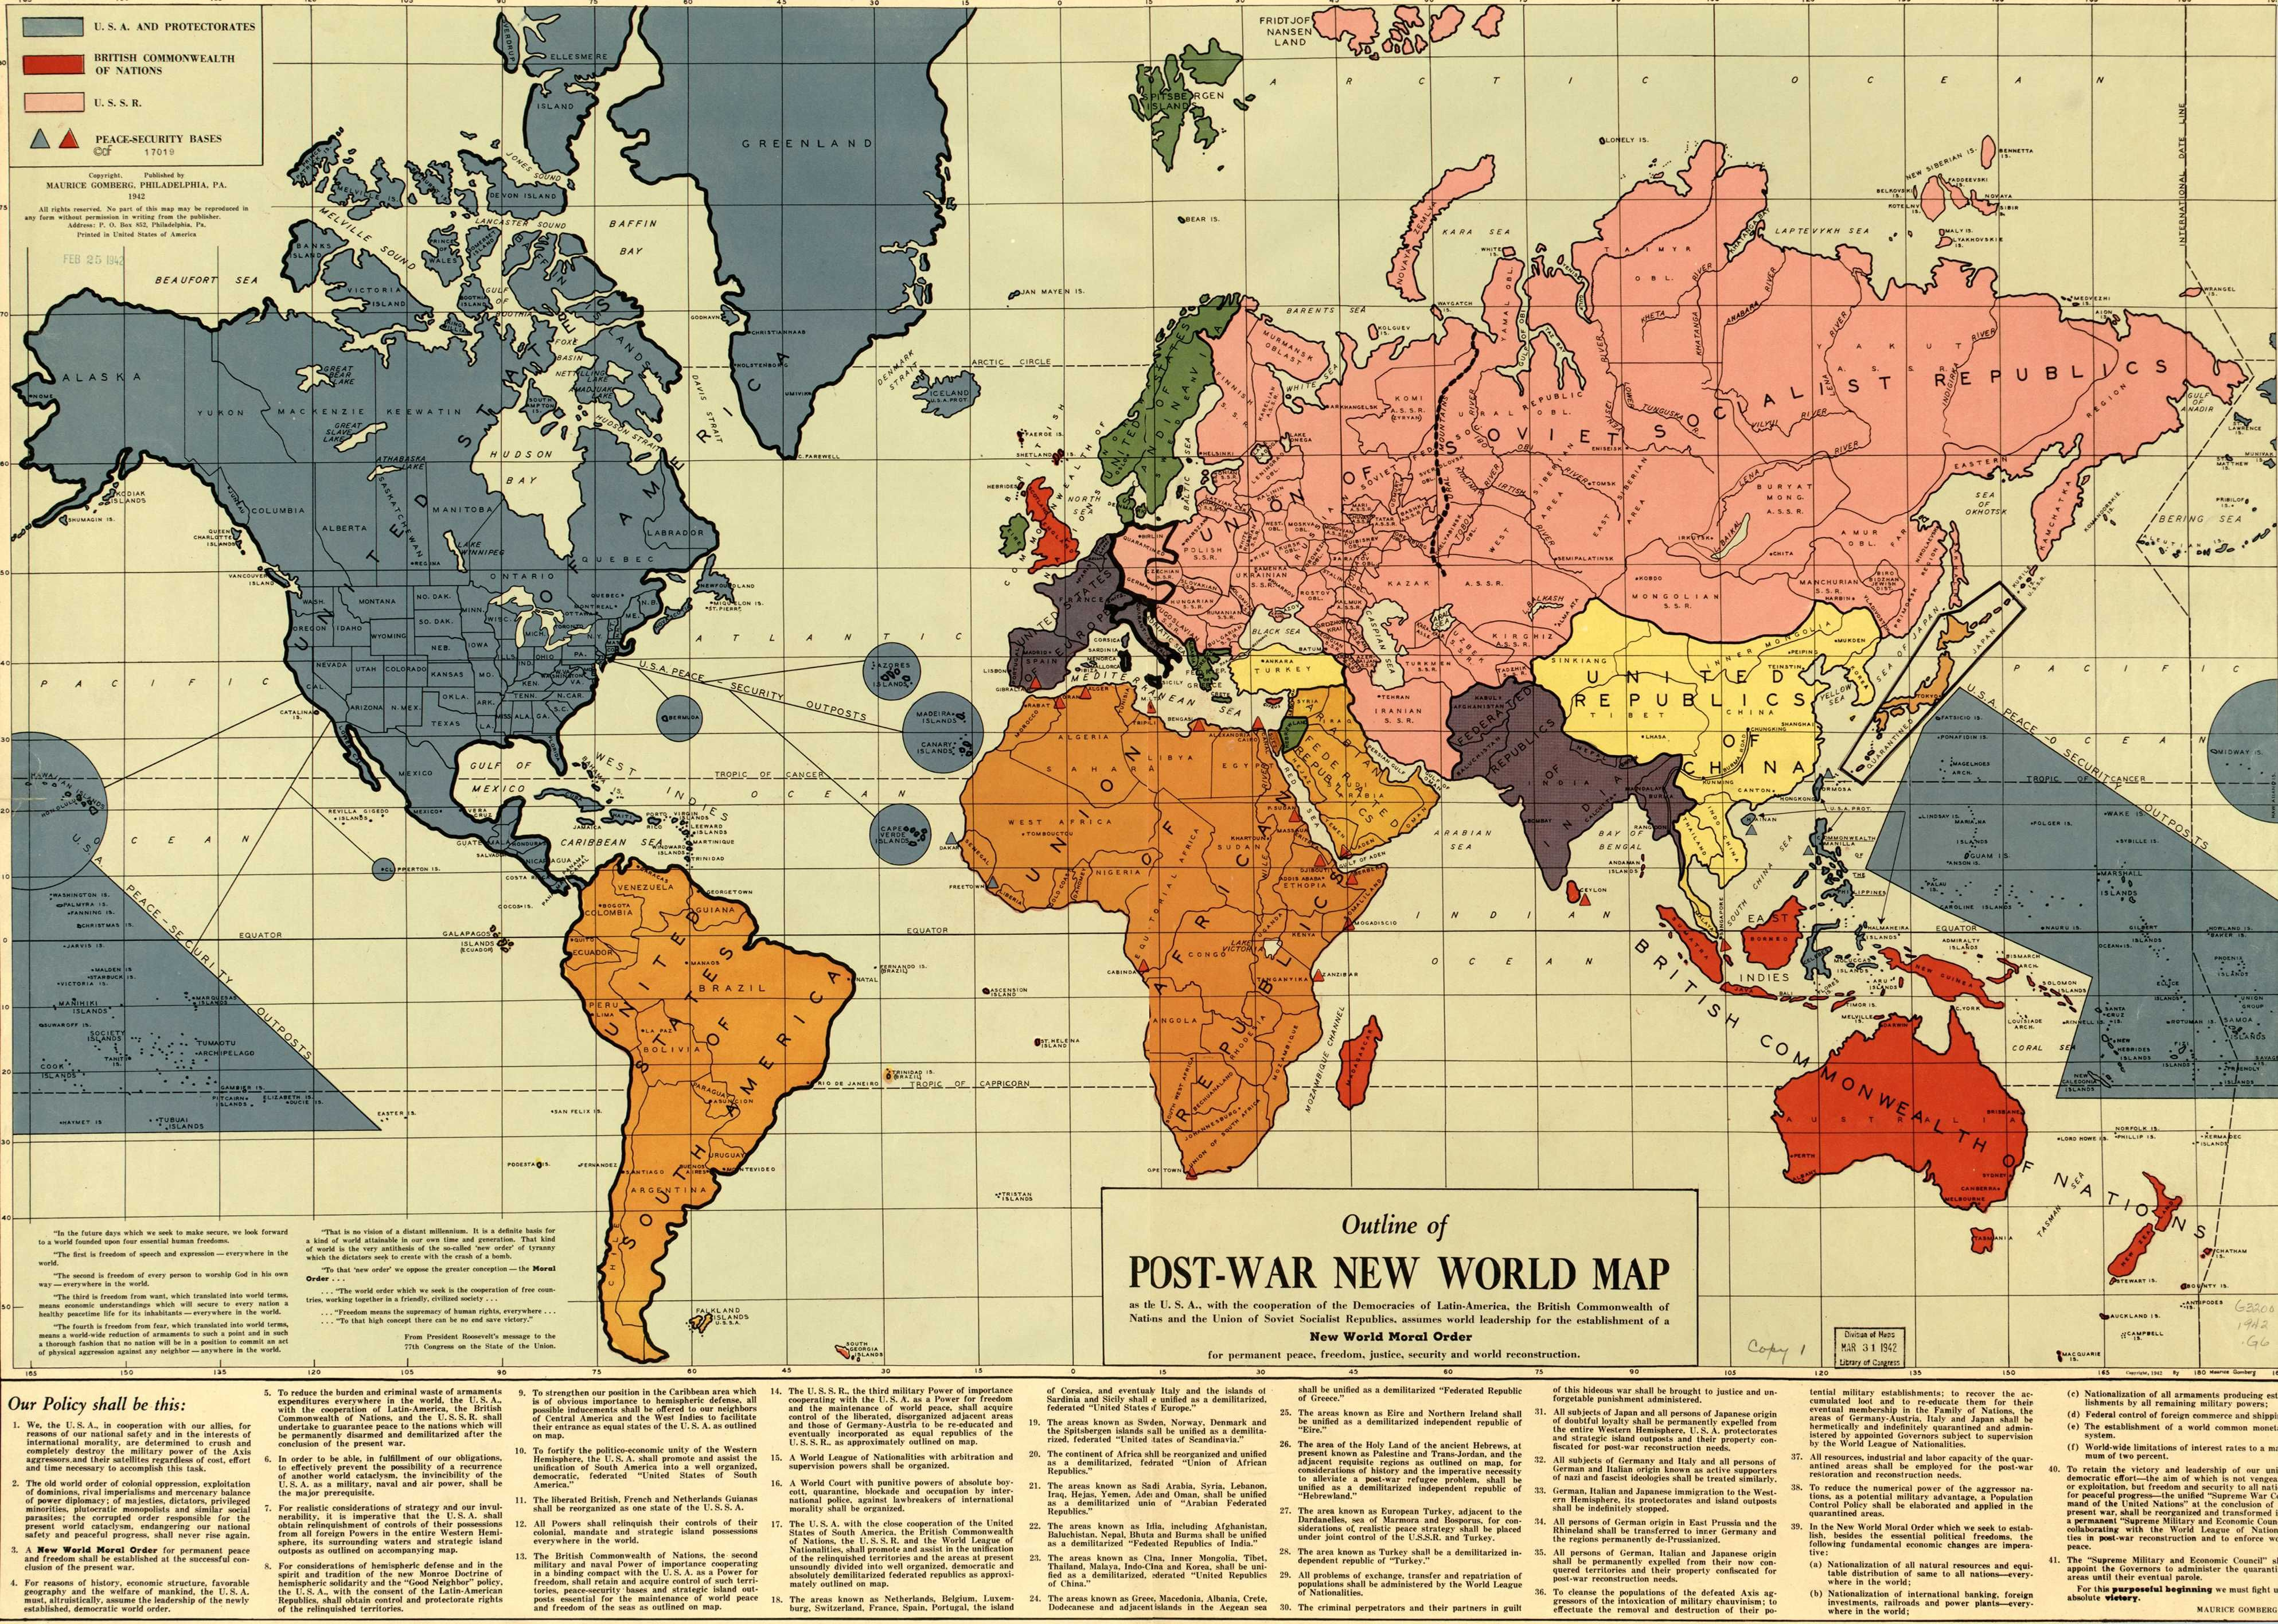 World Map created in 1942 which shows Japan quarantined (nuclear or ...